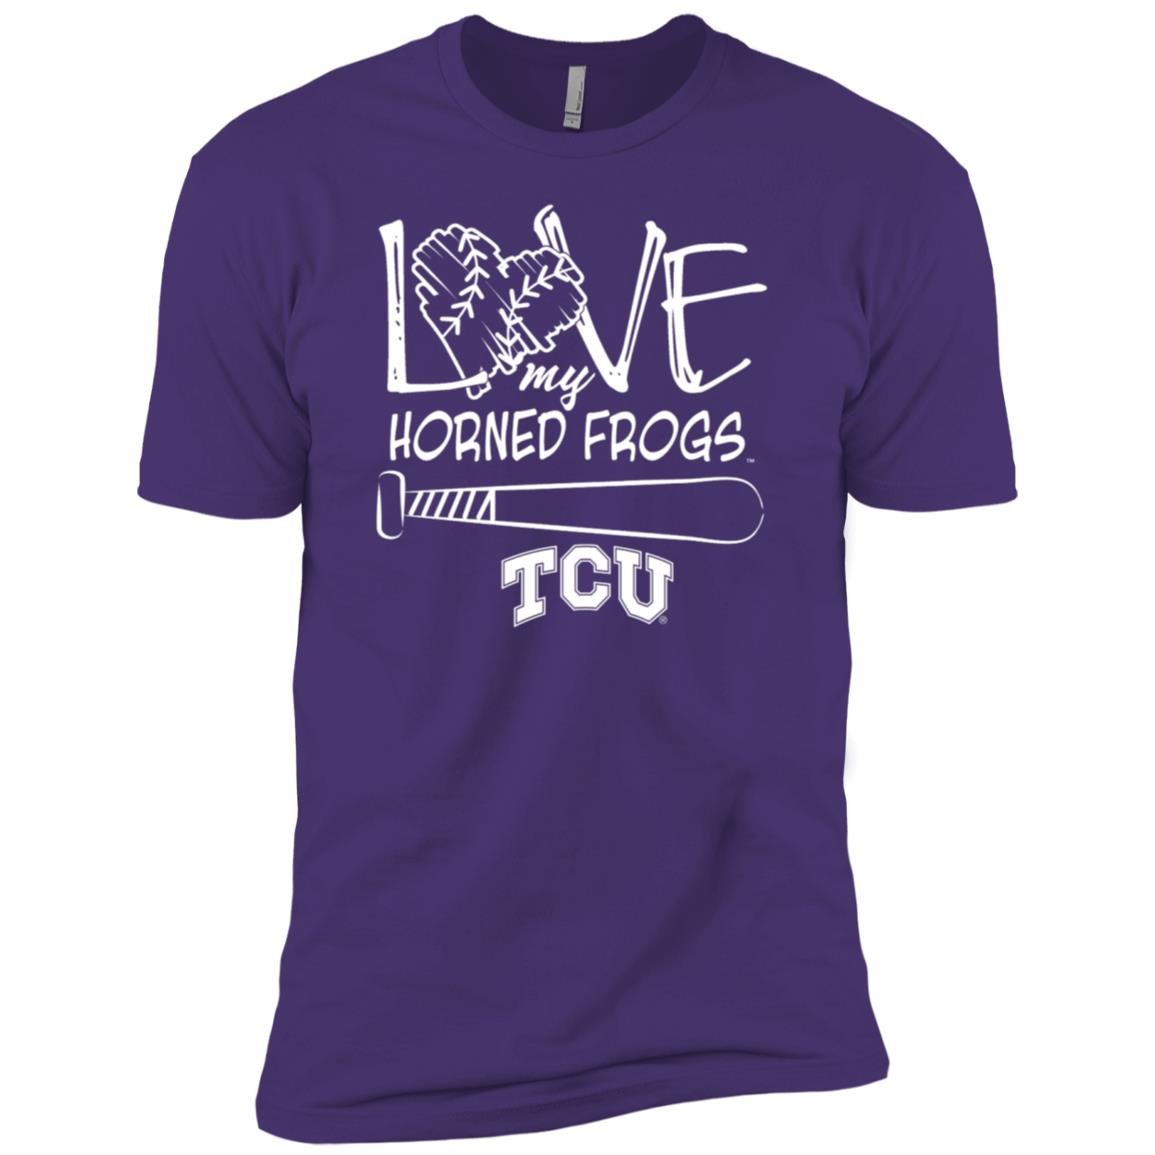 Tcu Horned Frogs Love Drawing Letters Men Short Sleeve T-Shirt